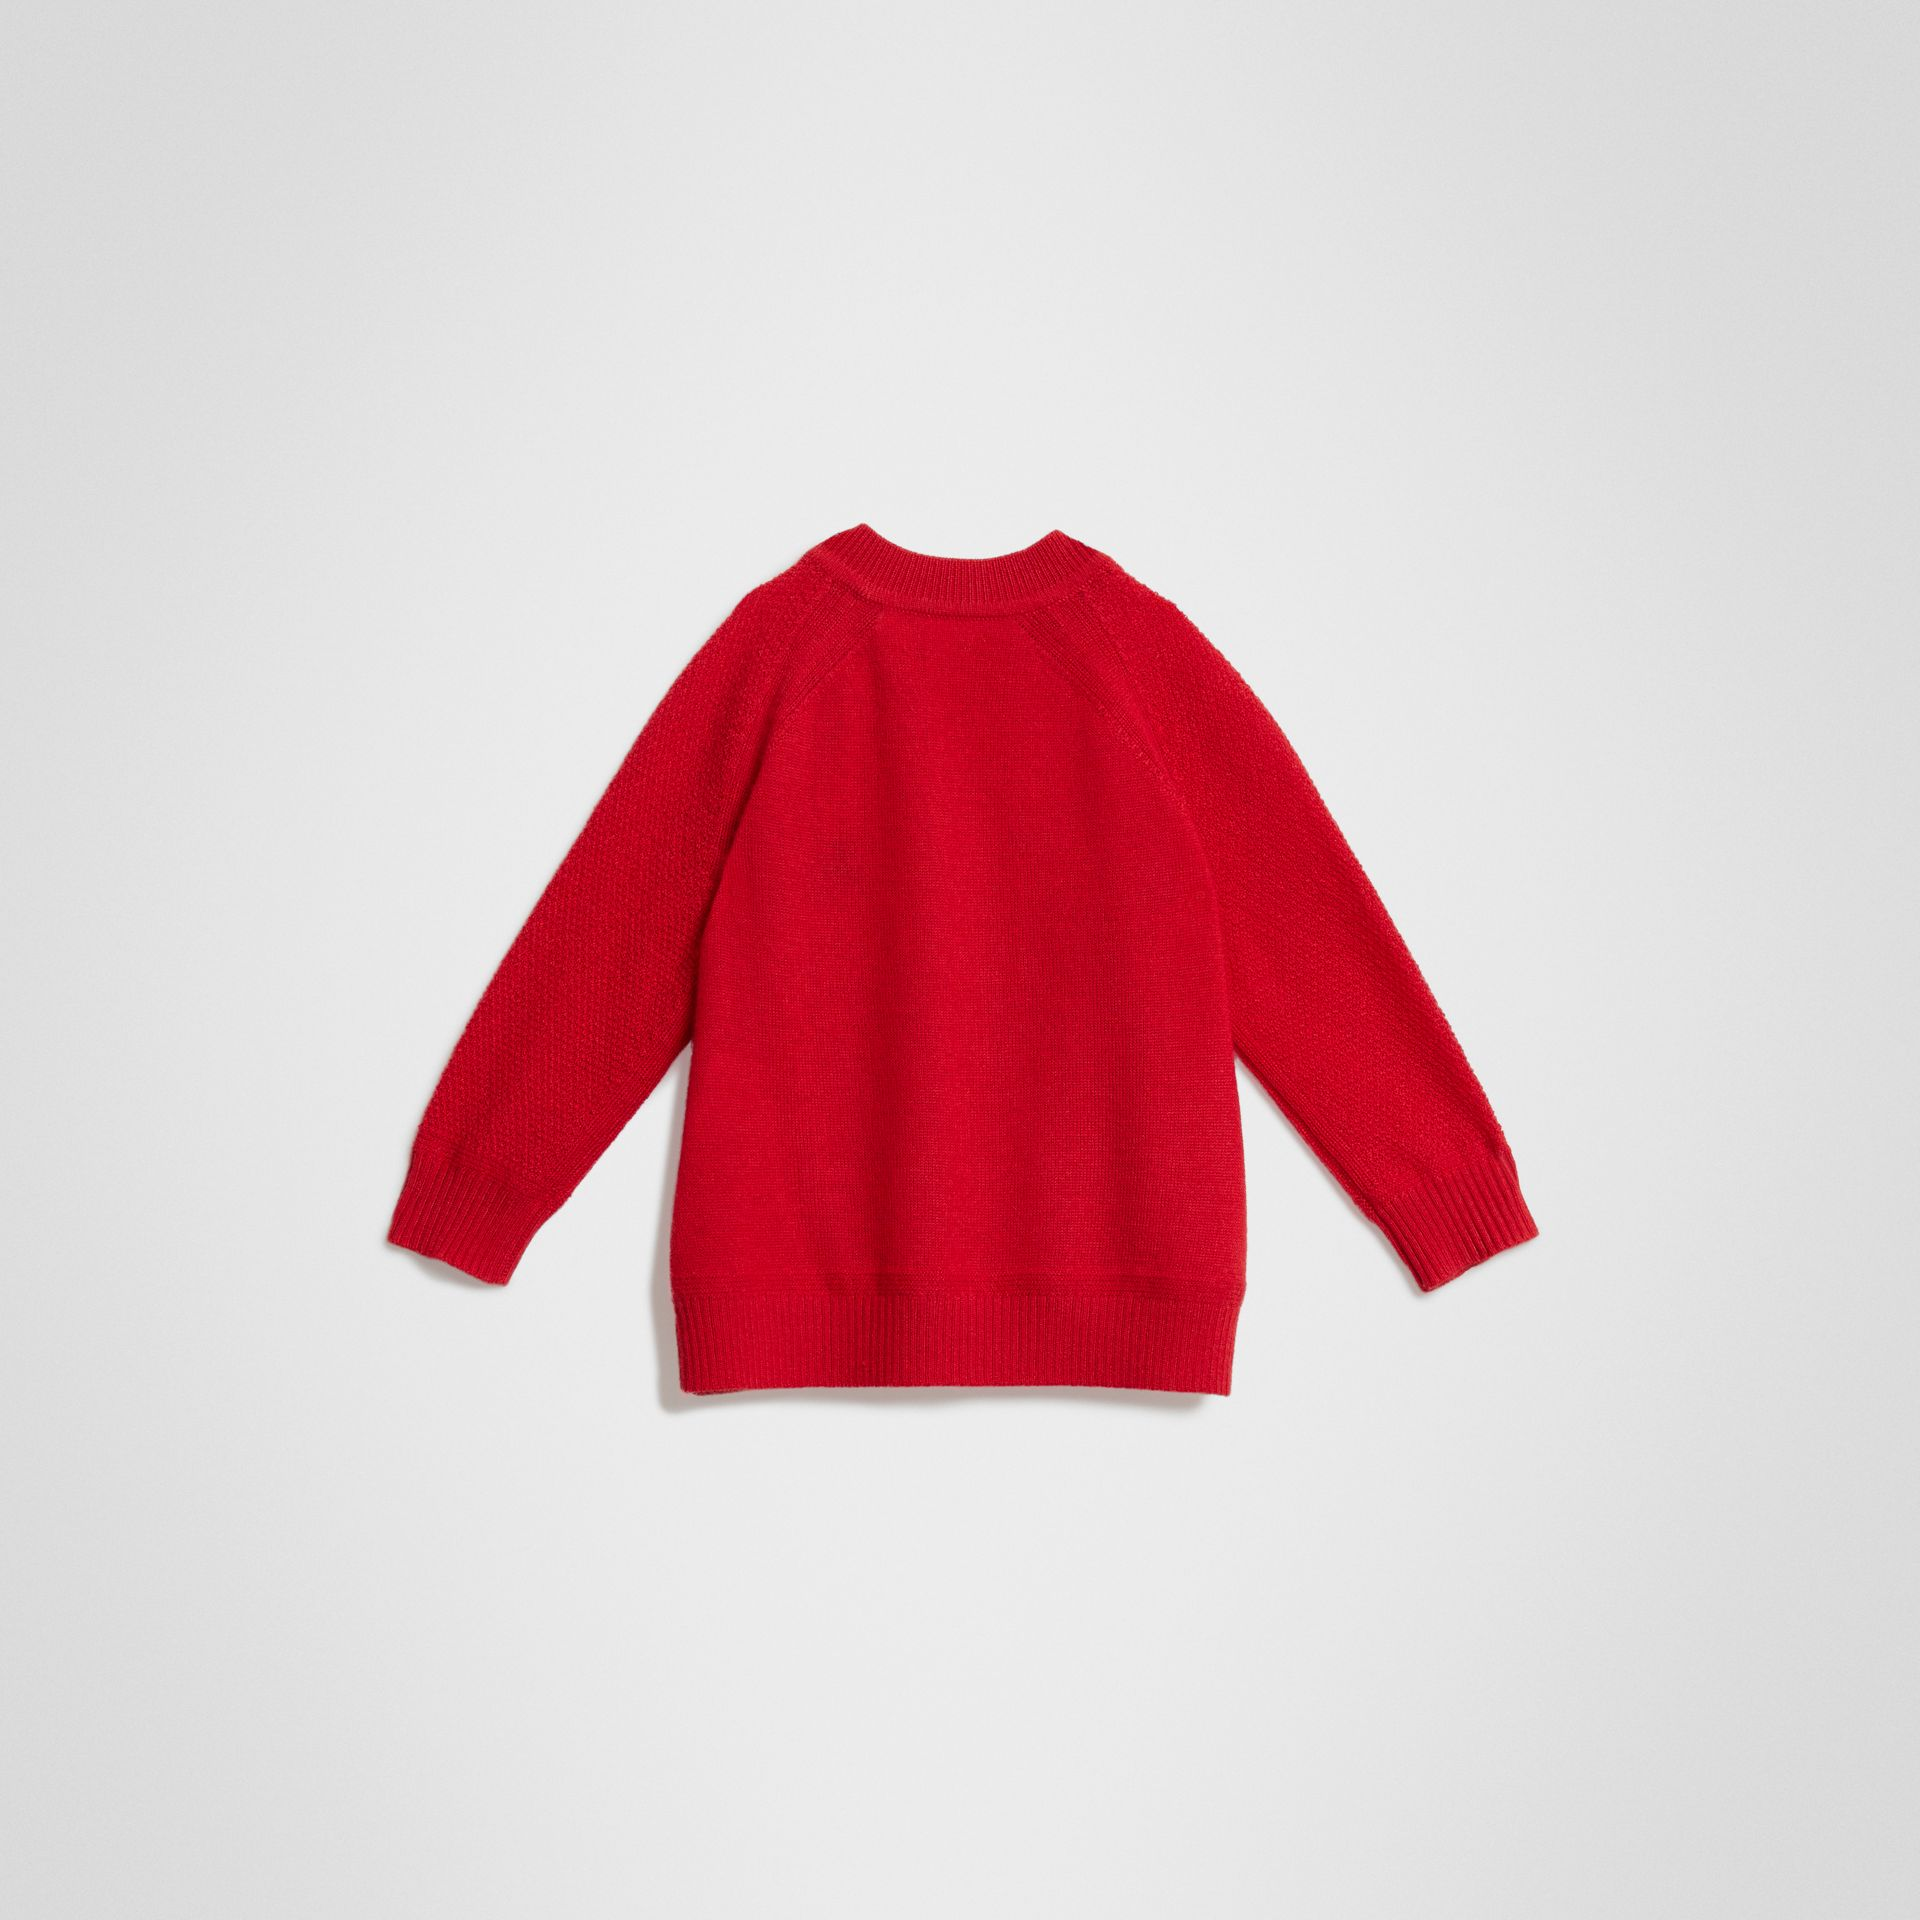 Contrast Motif Cashmere Sweater in Burgundy Red - Children | Burberry - gallery image 3